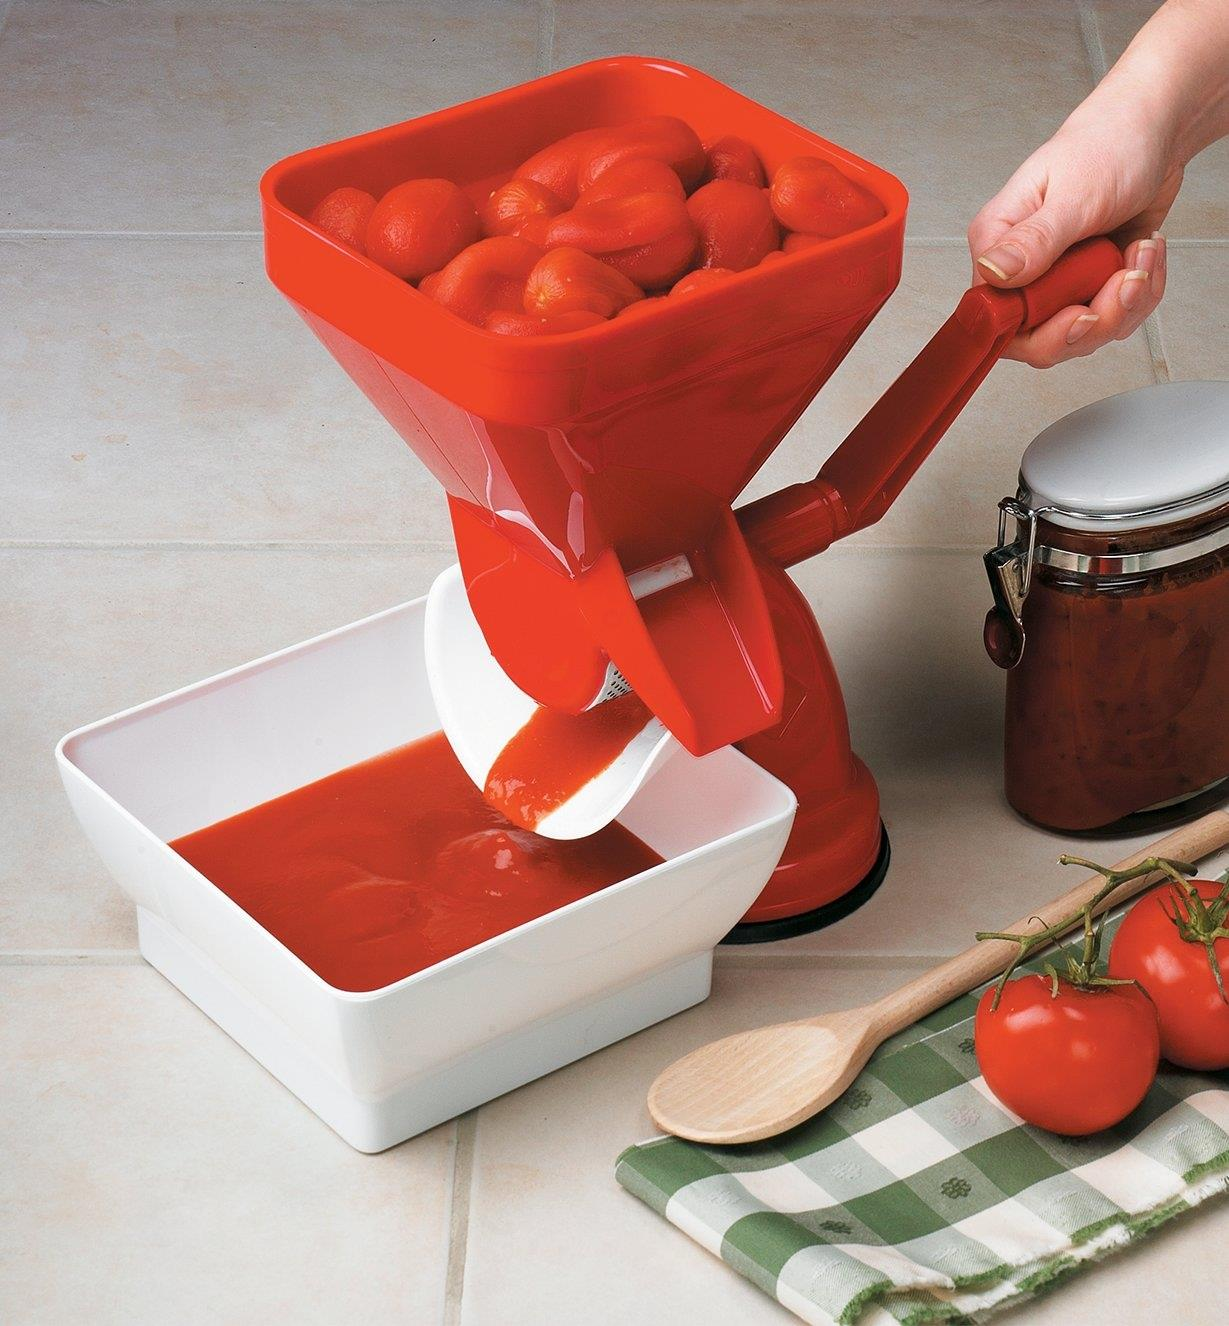 Turning the handle to process whole tomatoes into pulp that is extracted into a catch bowl